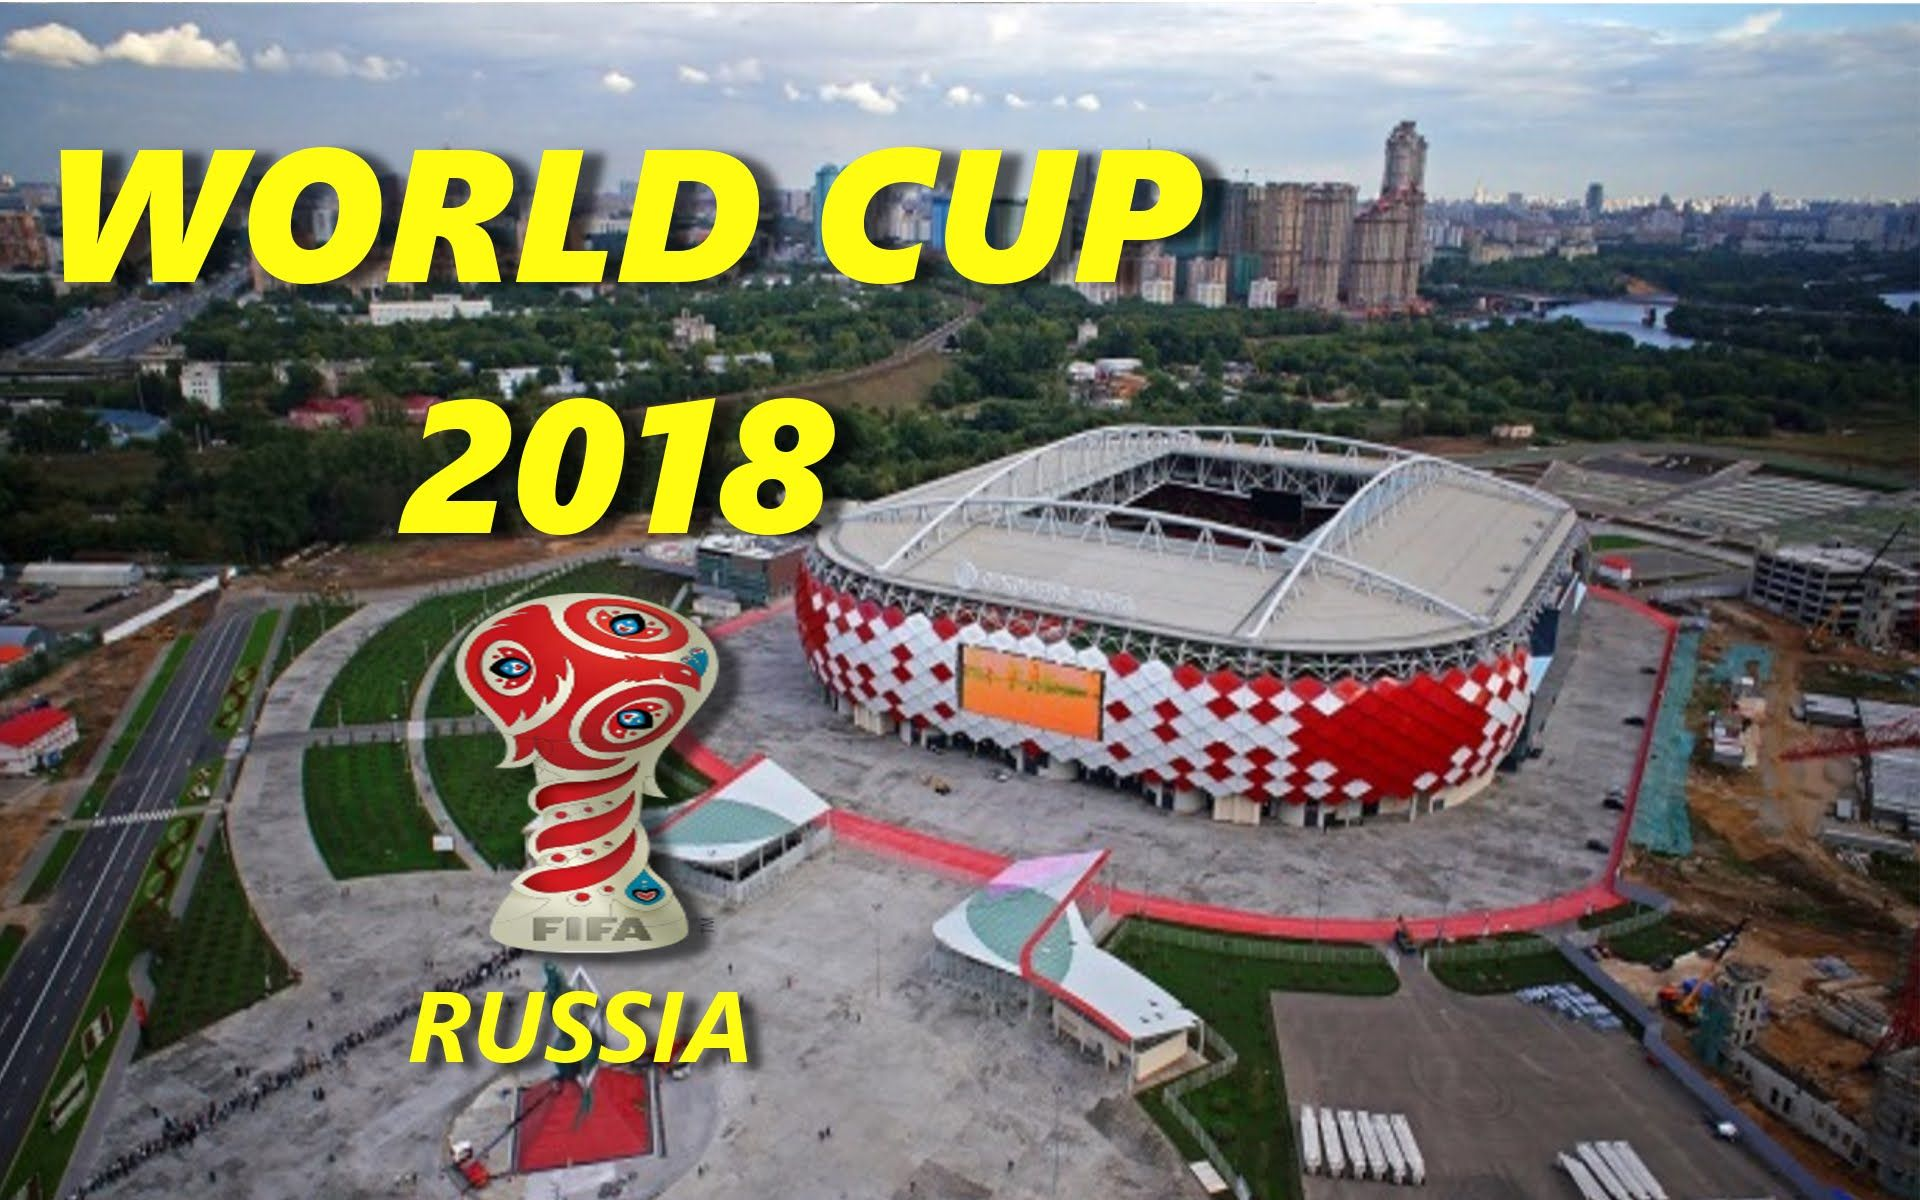 FIFA World Cup 2018 Stadiums Russia World cup, World cup